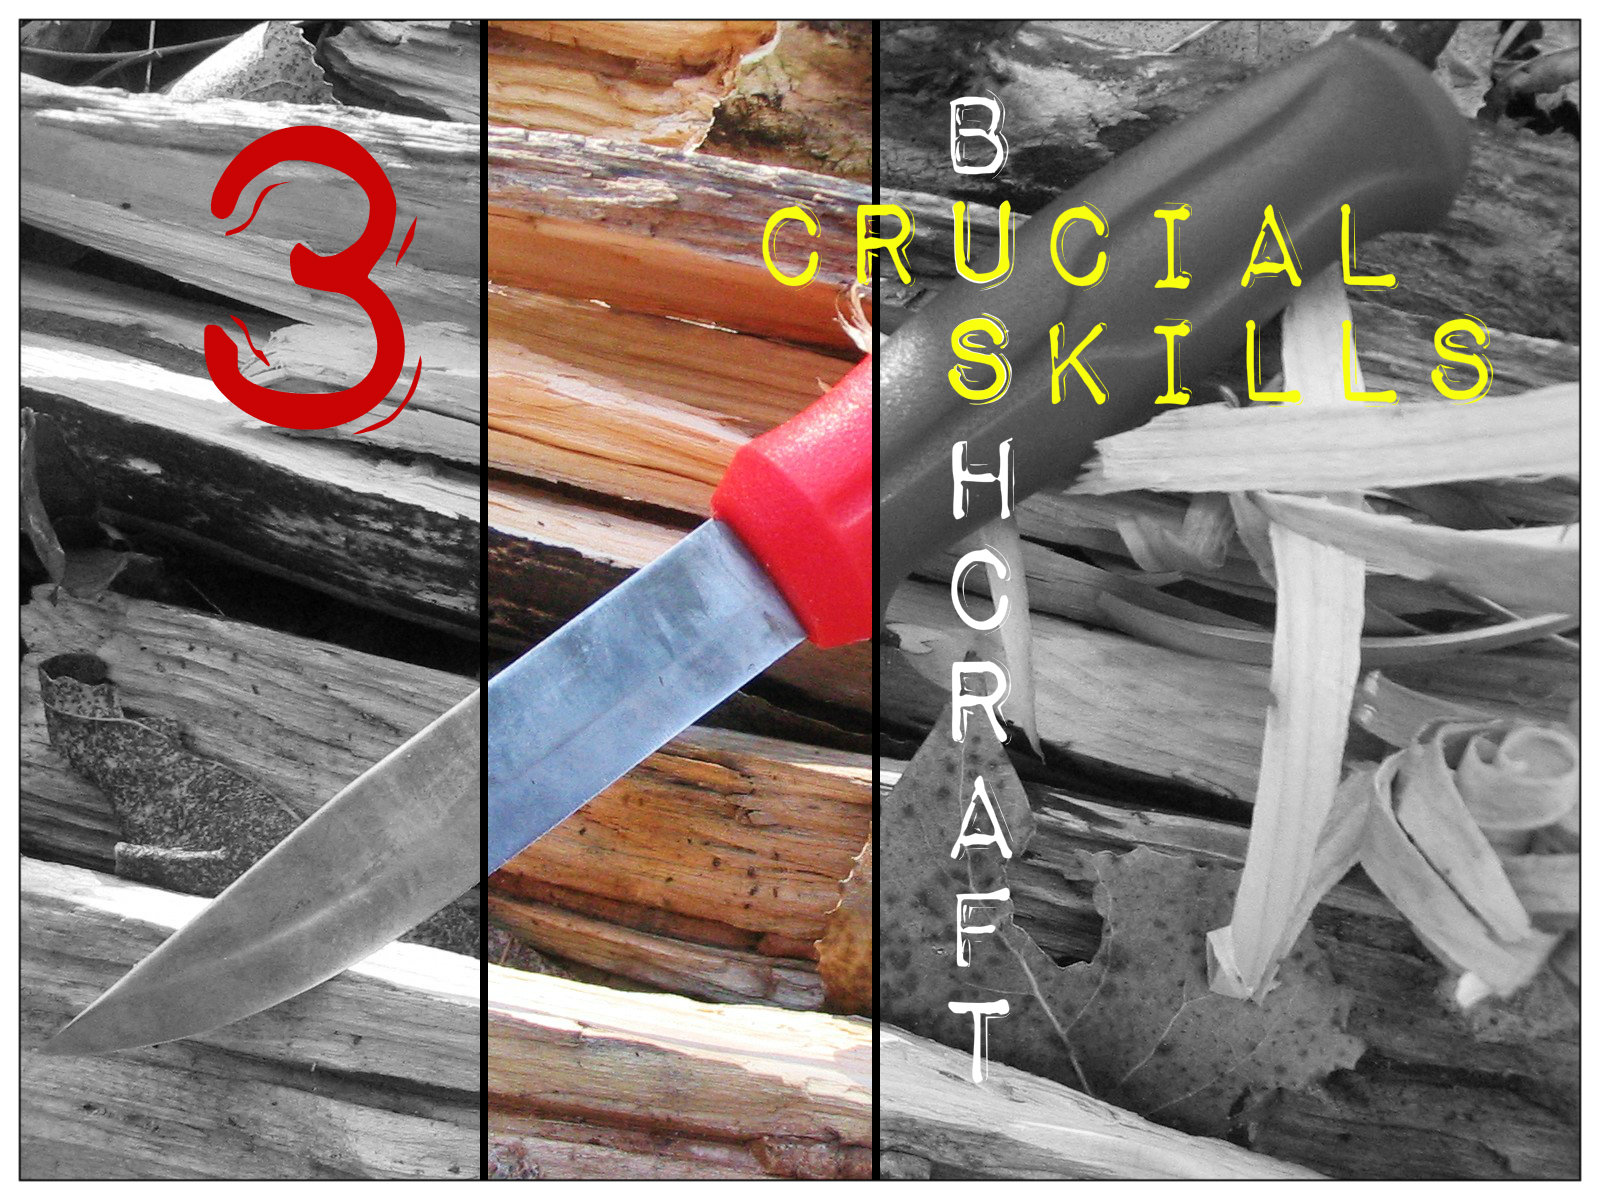 3 Crucial Bushcraft Skills For Preppers